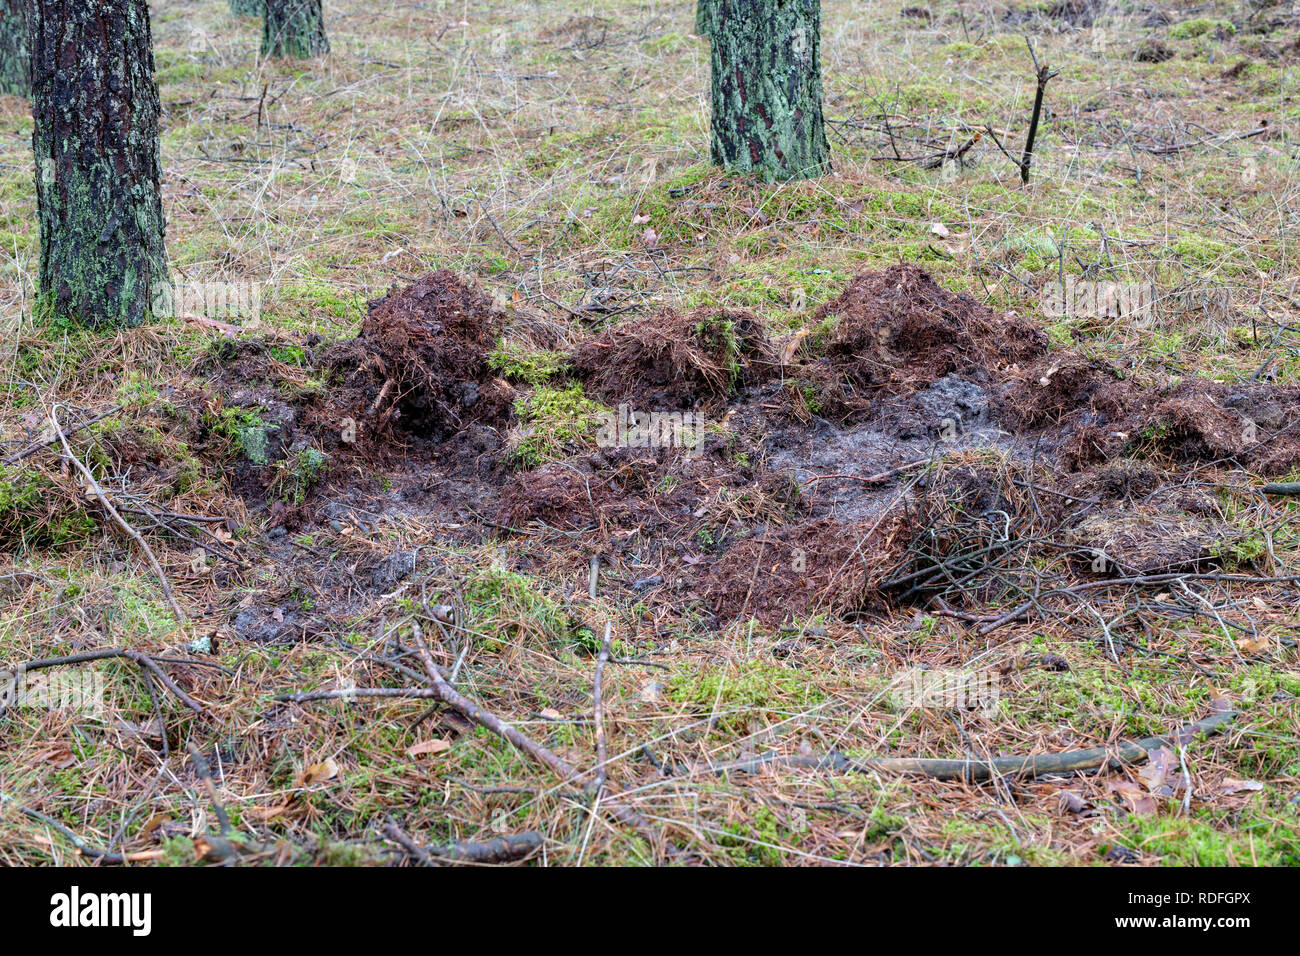 Traces of wild boar on a forest road. The place where the pack of wild boars stay in the forest. Season winter. - Stock Image